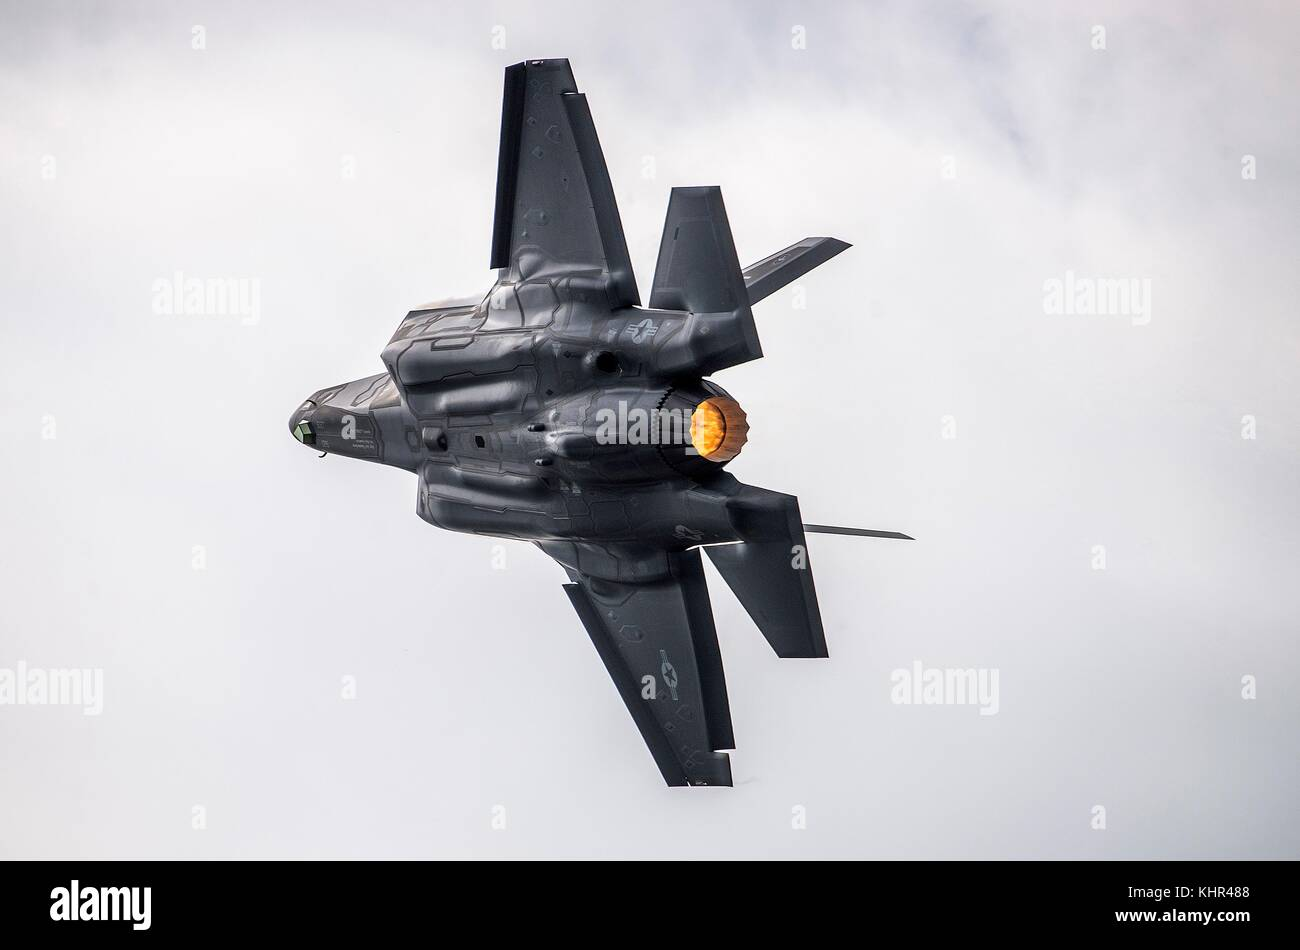 A U.S. Air Force F-35 Lightning II stealth fighter aircraft flies during the Joint Base San Antonio Air Show and Stock Photo